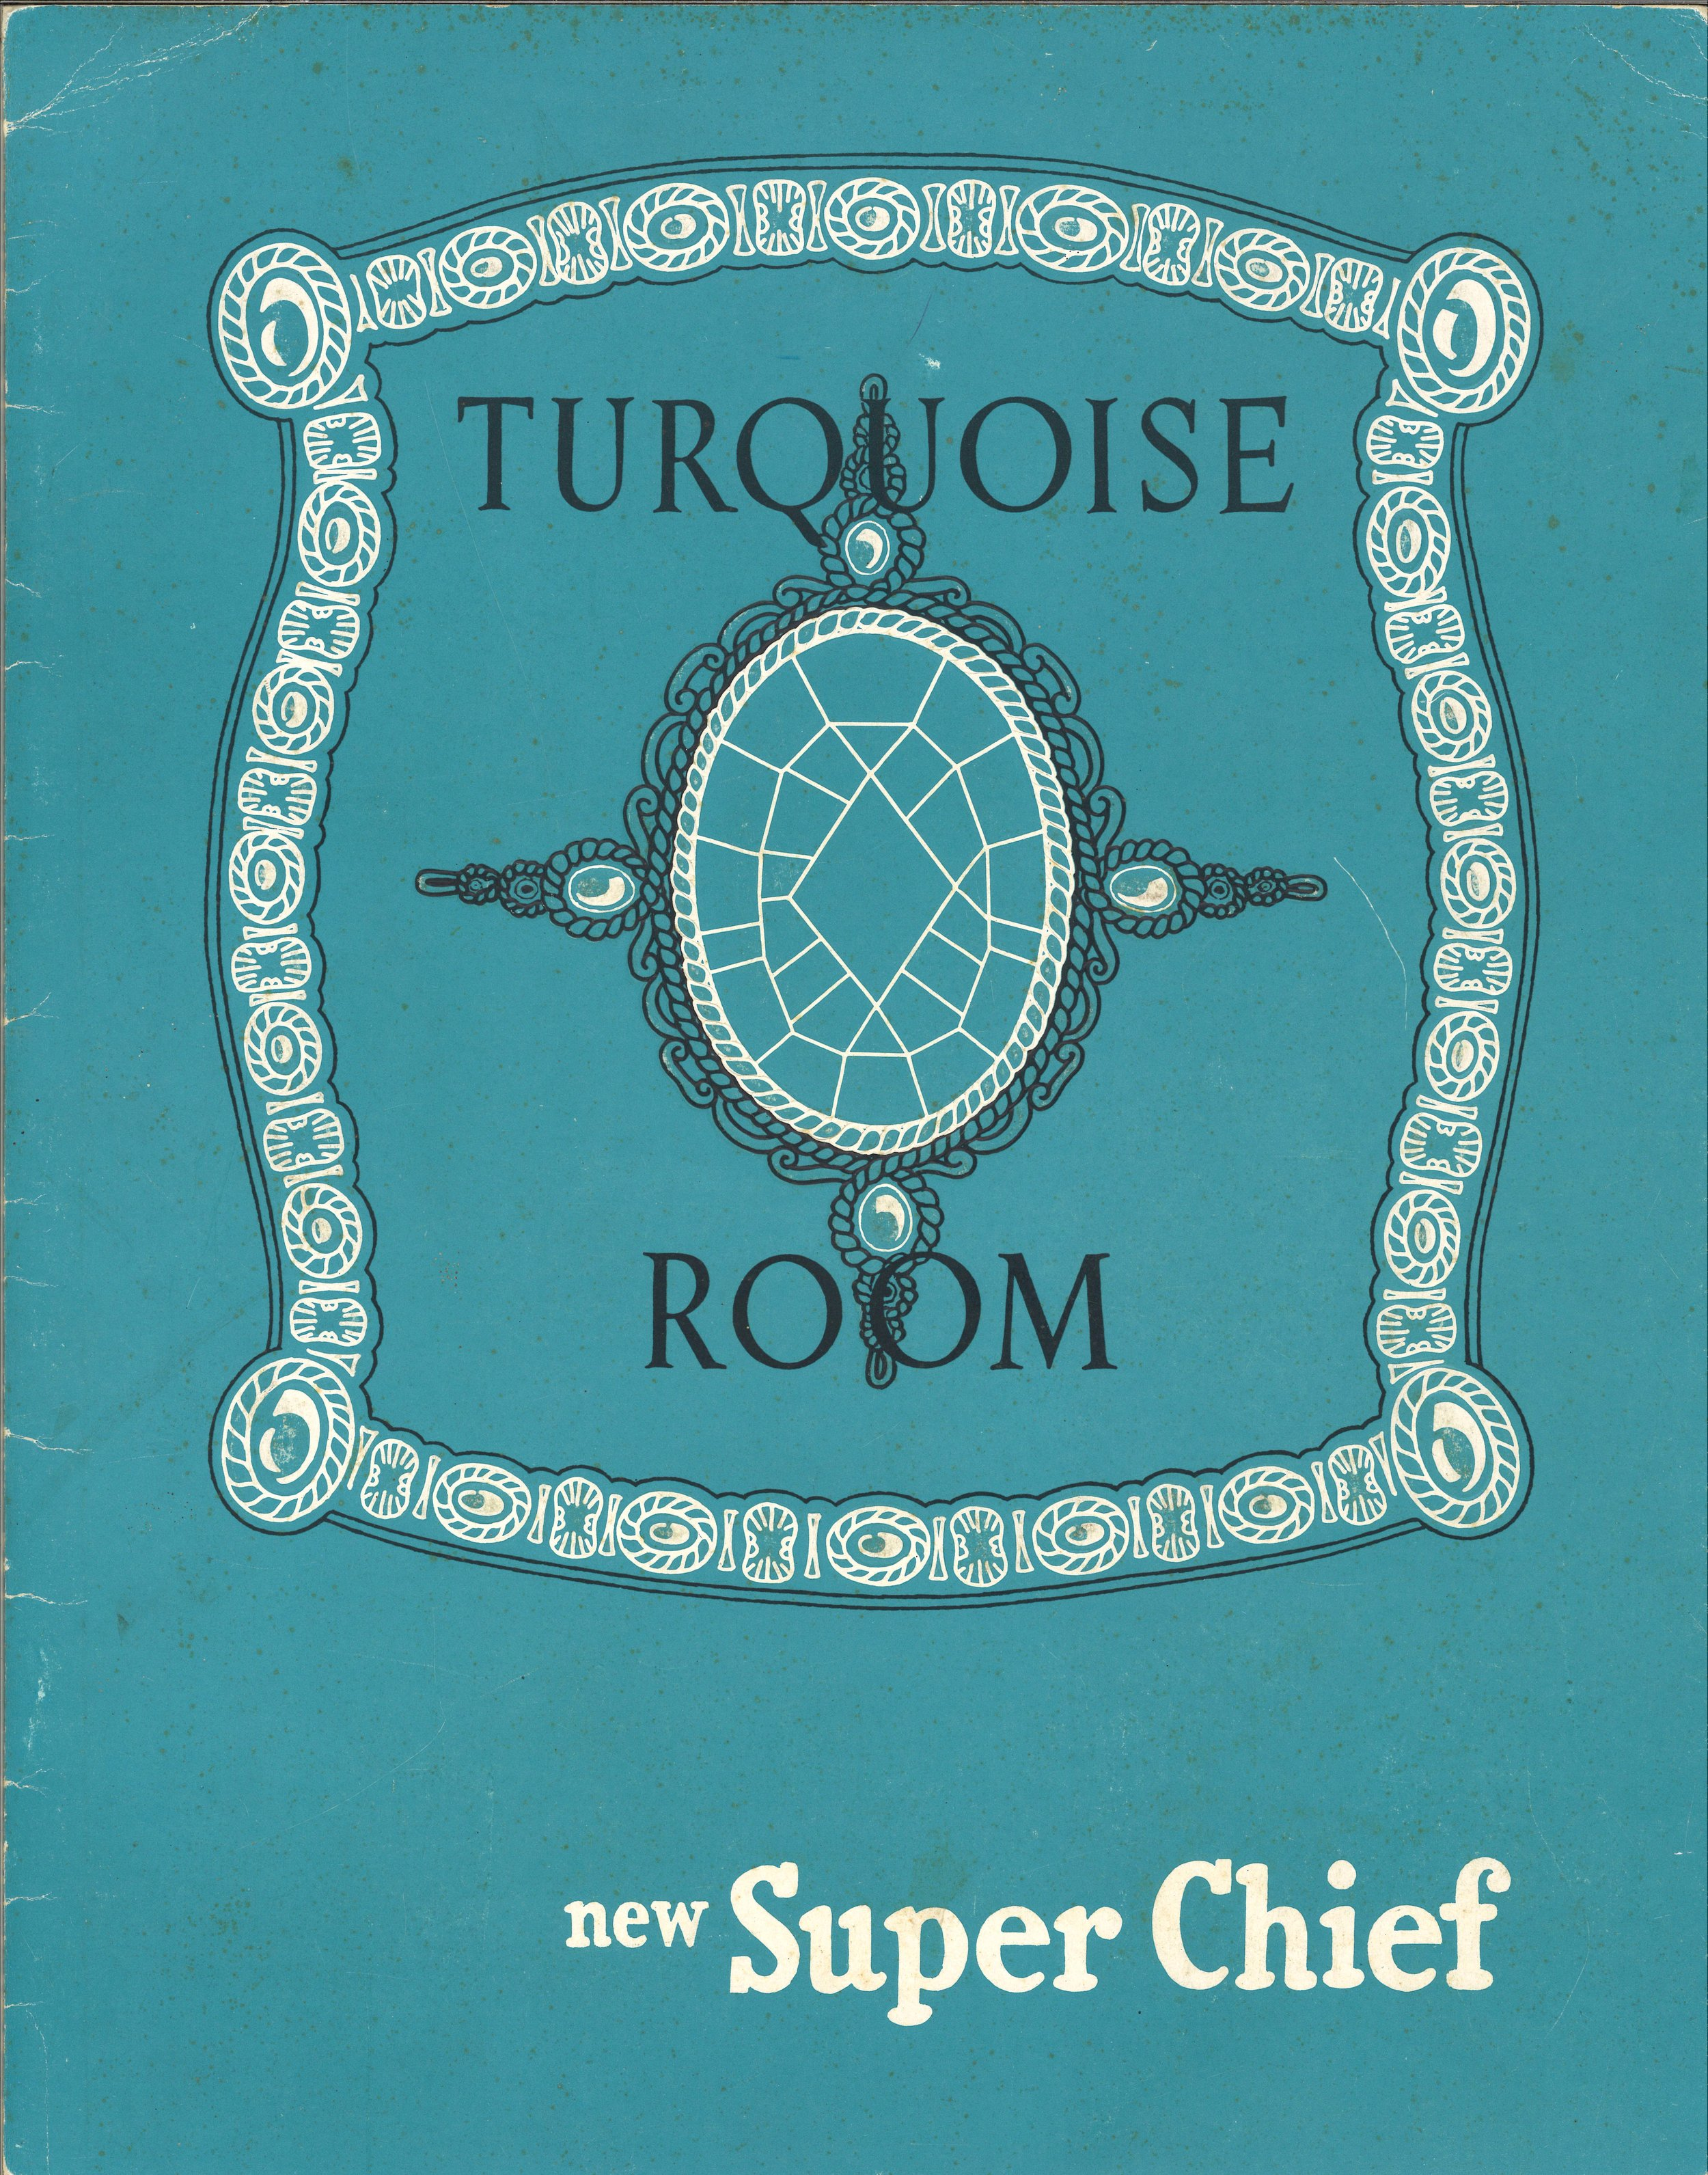 Turquoise Room New Super Chief Menu.jpg